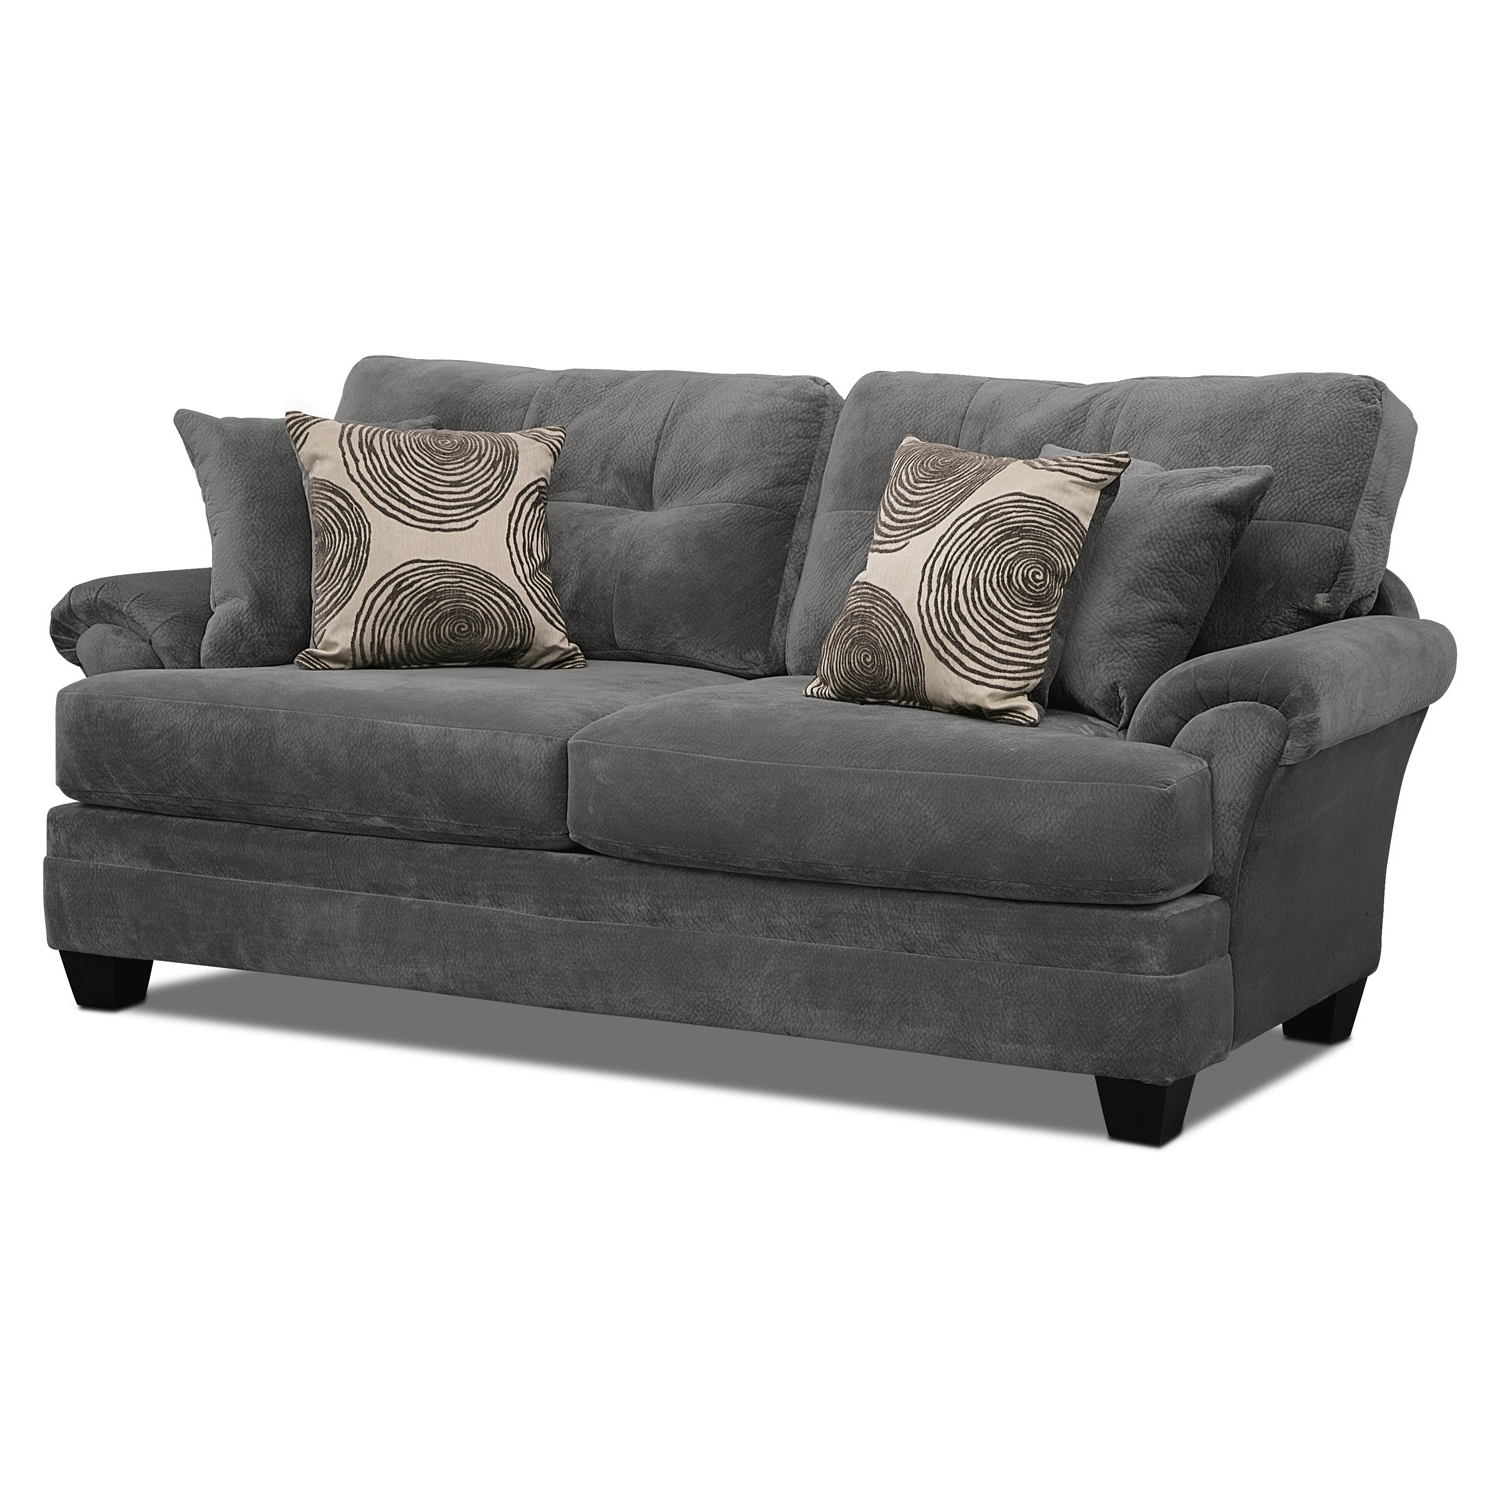 Furniture : Couchtuner X 8 Week Couch To 5K Training Plan Sofa Regarding Famous Greenville Nc Sectional Sofas (View 3 of 20)